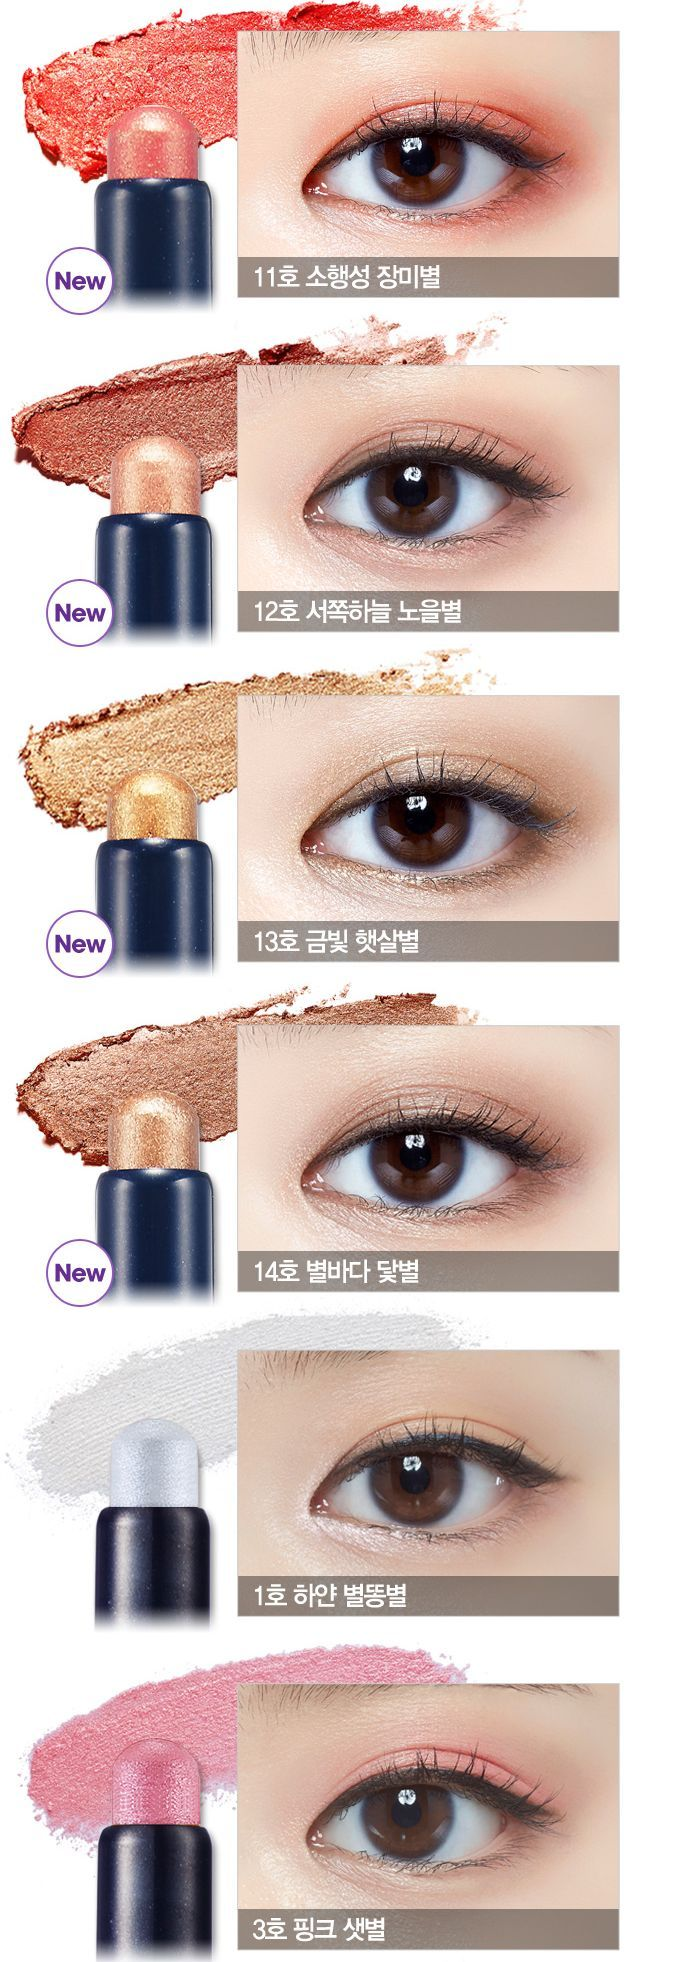 Best 25 korean eye makeup ideas on pinterest ulzzang makeup etude house bling bling eye stick eyeshadow i like the softer shimmery colours in korean style eye makeup over a prominently bright or smoky eye like ccuart Images